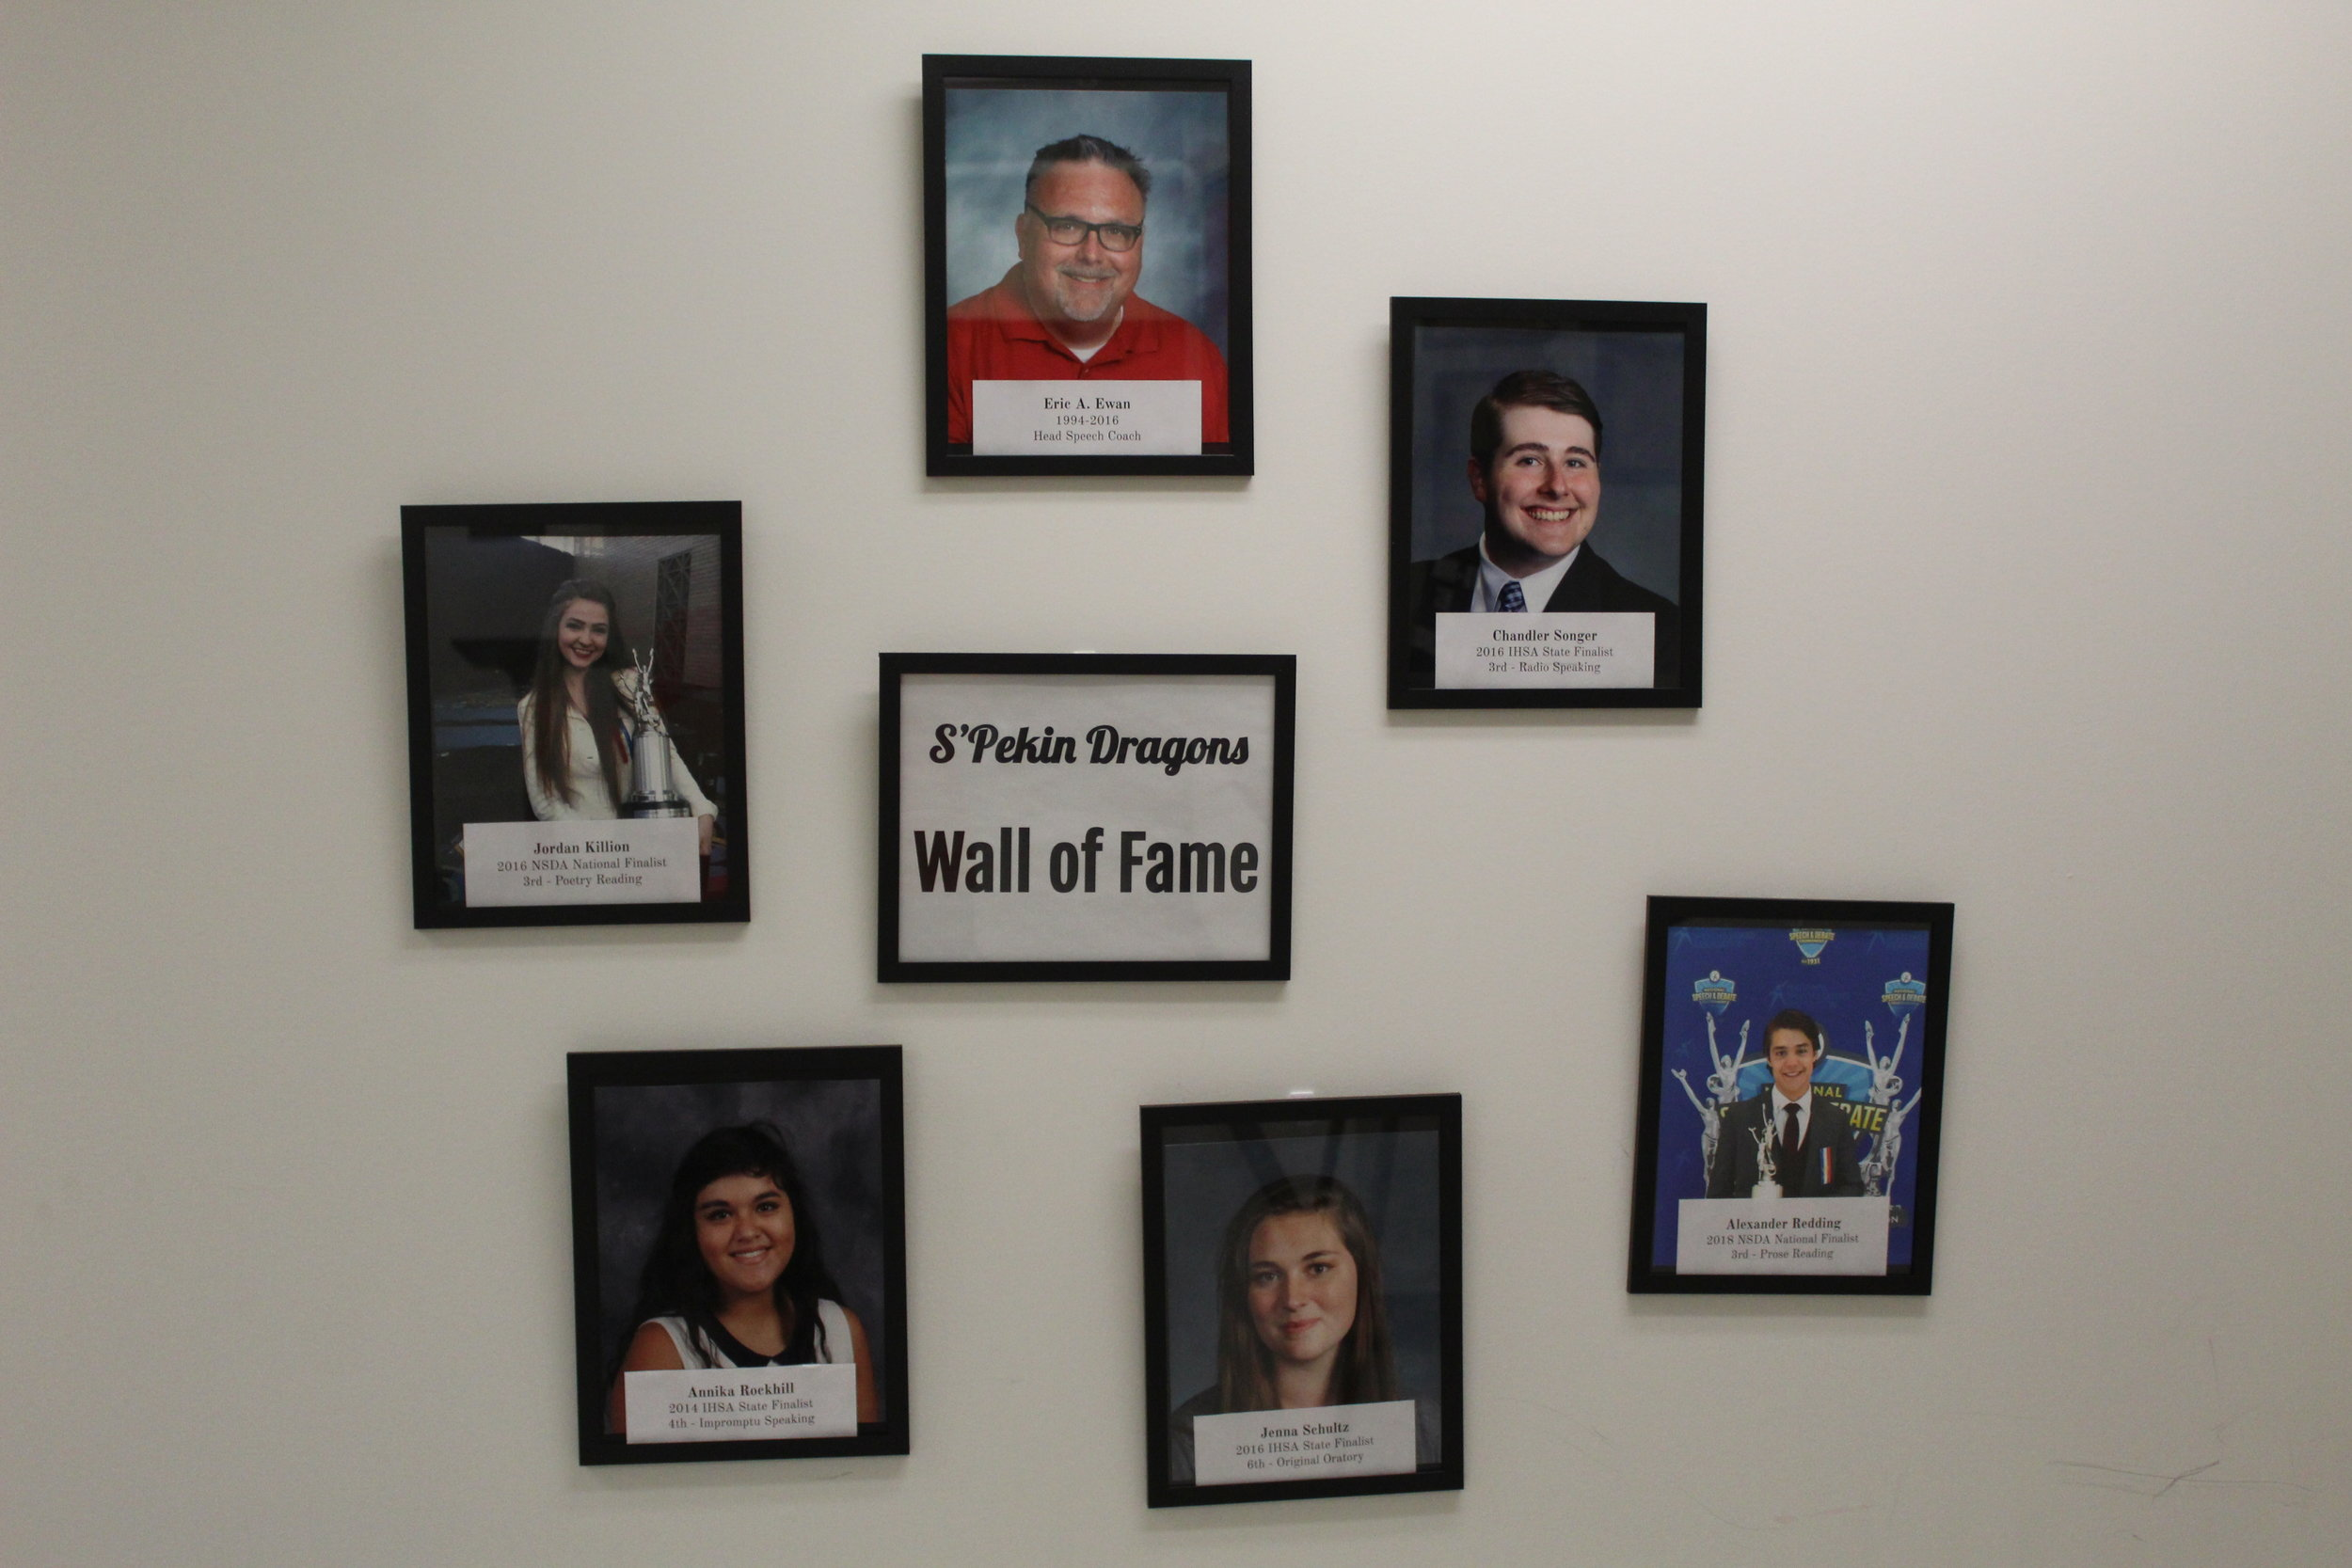 The Wall of Fame can be found in Mr. Pyles room. The wall is a new addition to the team this year and includes many successful alumni including… Mr. Eric Ewan (top), Jordan Killion (top left), Annika Rockhill (bottom left), Jenna Schultz (bottom), Alexander Redding (bottom right), and Chandler Songer (top right)